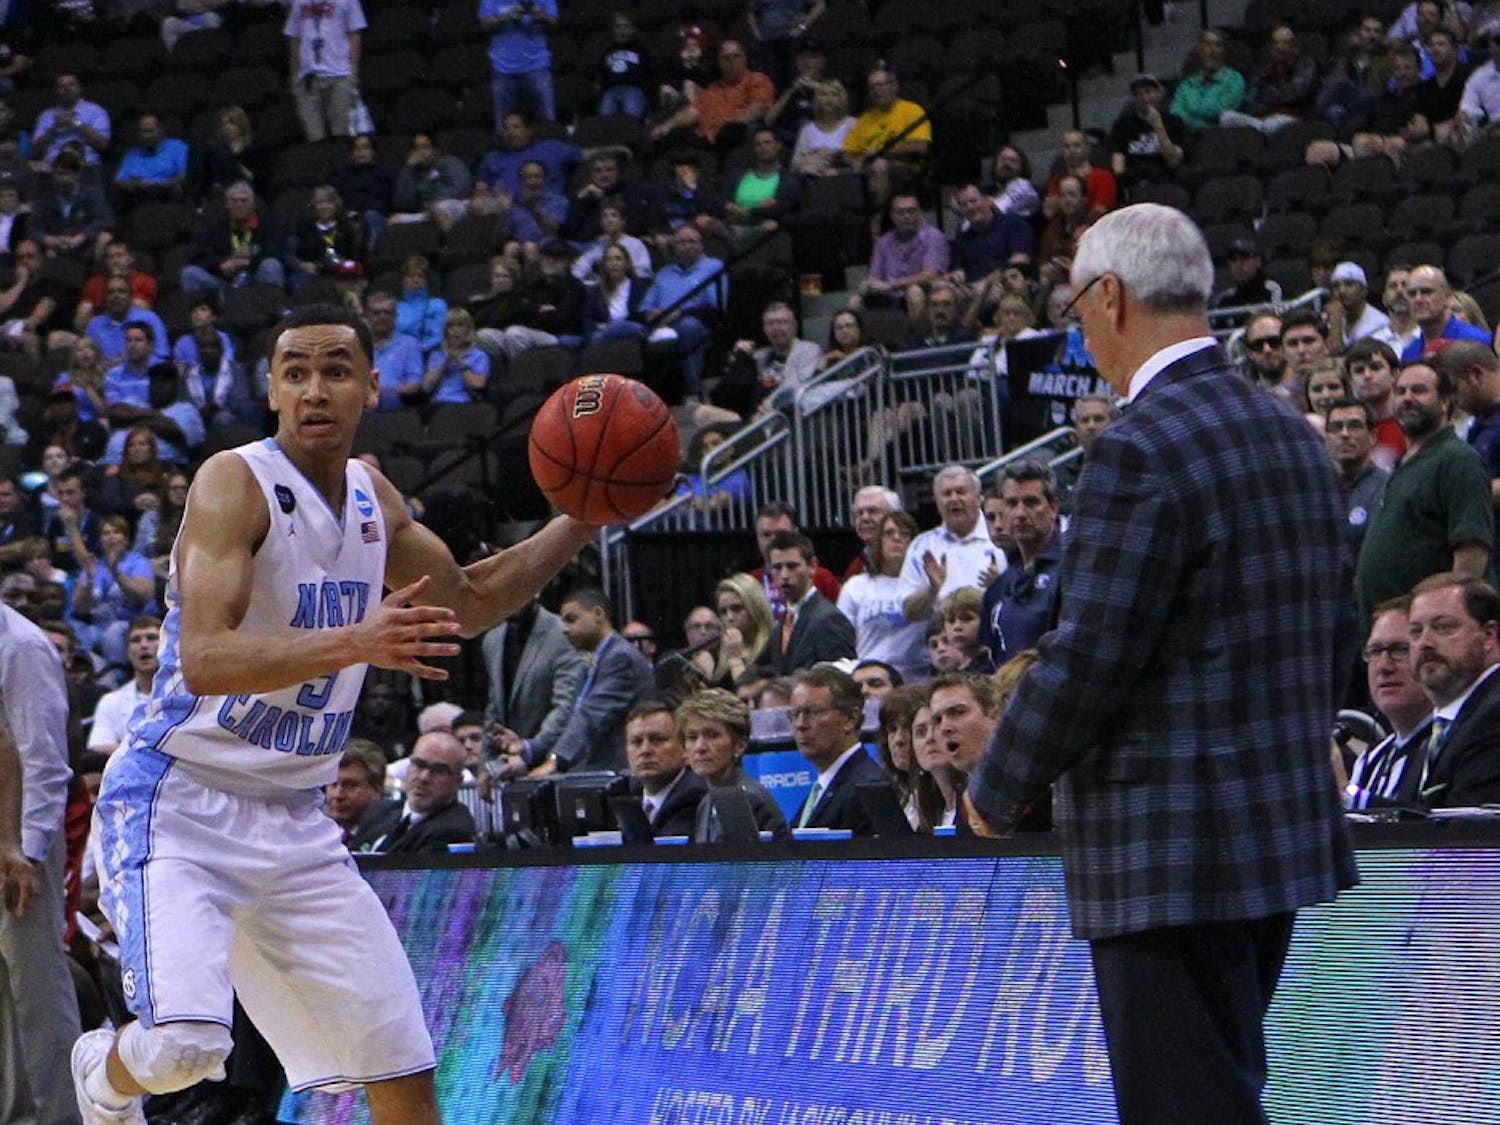 UNC guard Marcus Paige (5) stays inbound while looking to pass to a teammate. The Tar Heels defeated the Arkansas Razorbacks, 87-78, on Saturday in Jacksonville, Fla.